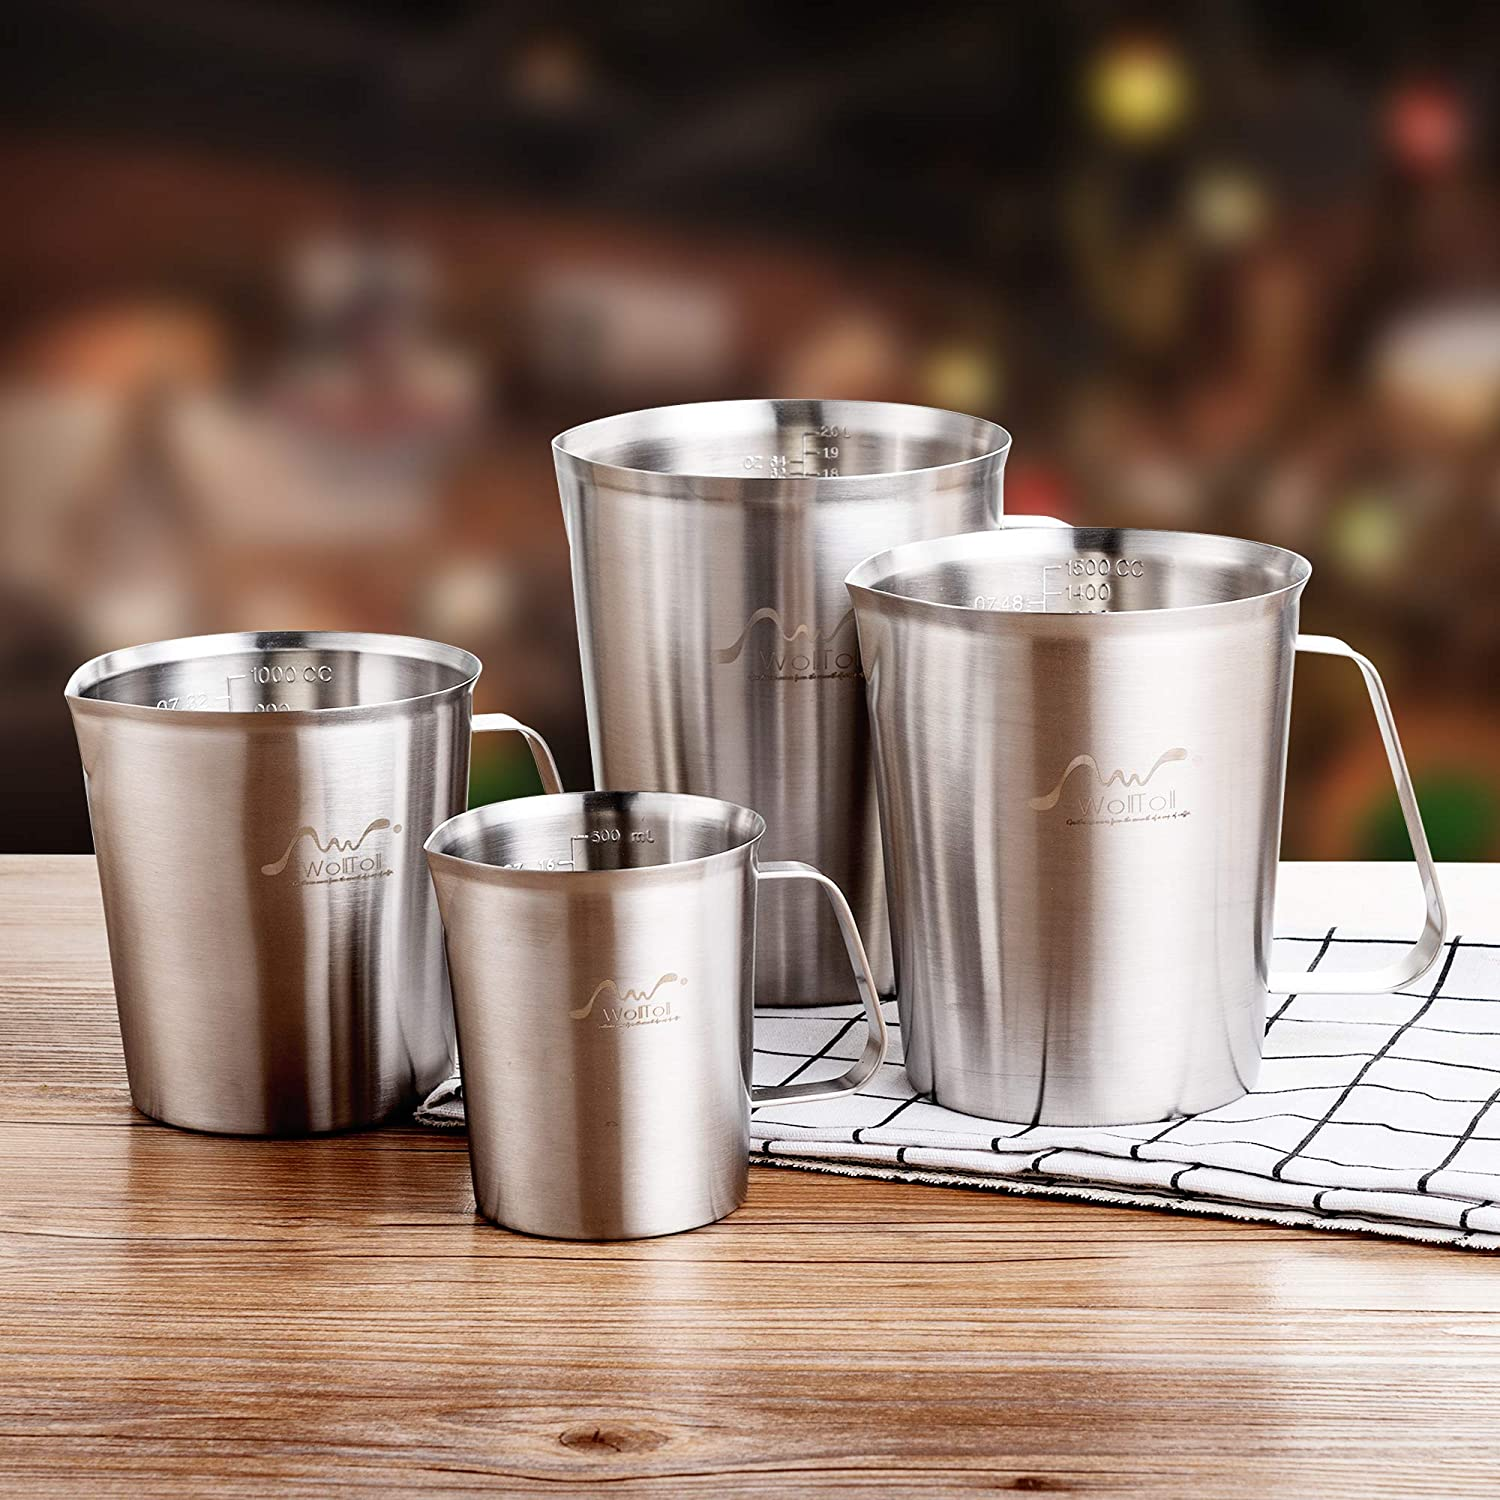 Stainless Steel 304 Measuring Cup with Scale (33.8oz/1Liter, 6 Cups) Large Capacity Kitchen Coffee Cappuccino Latte Art Tea Milk Frothing Jug Pitcher Beaker